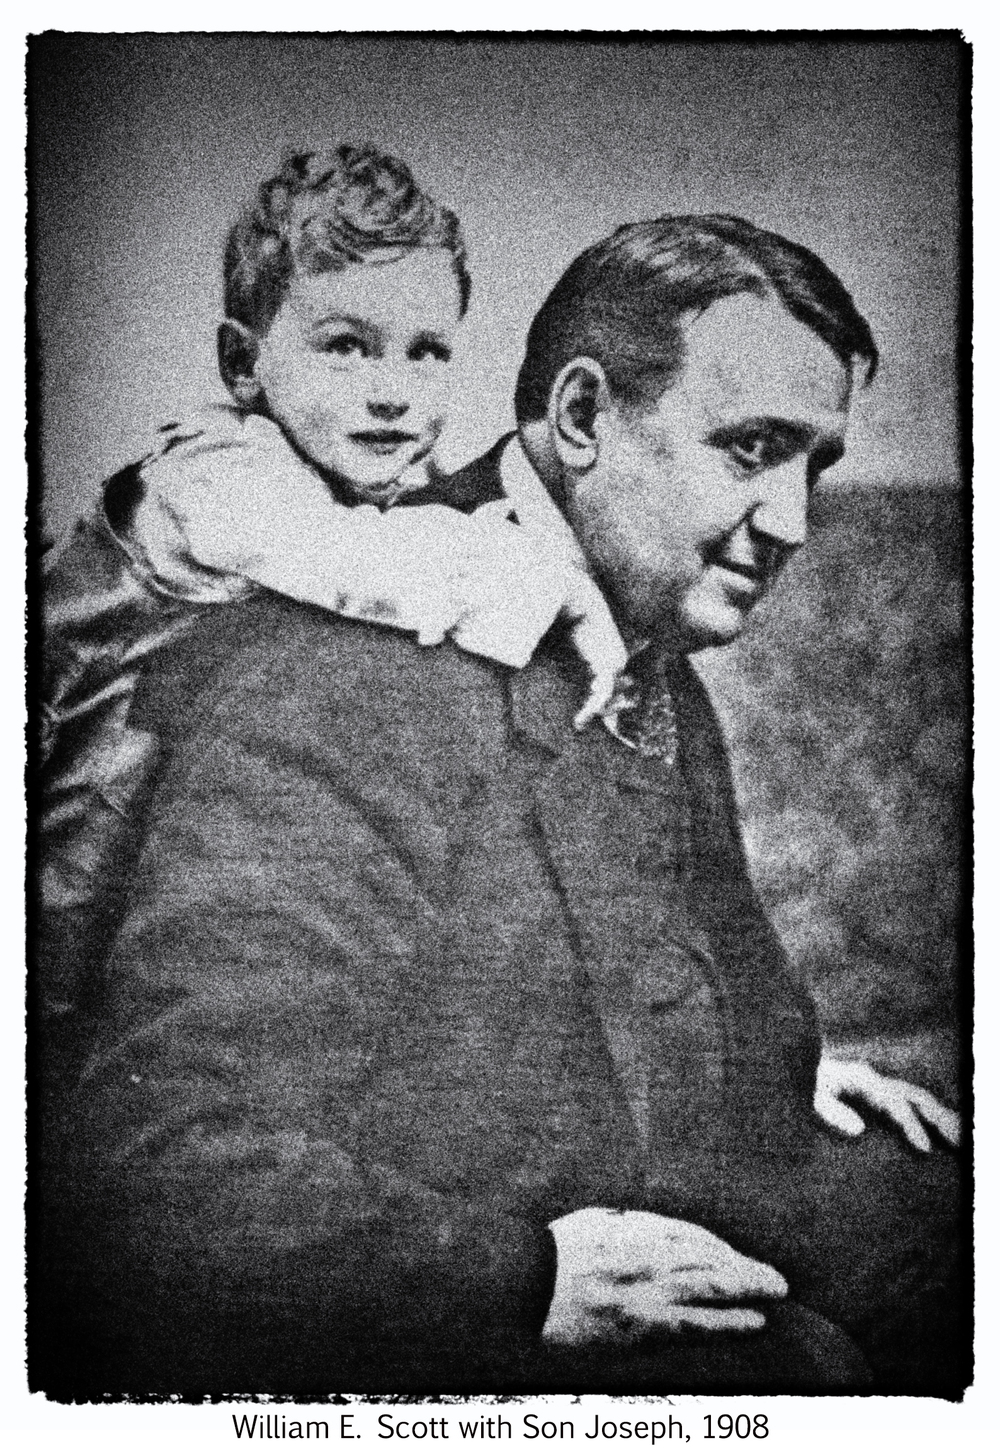 William Scott & Joseph - 1908.jpg